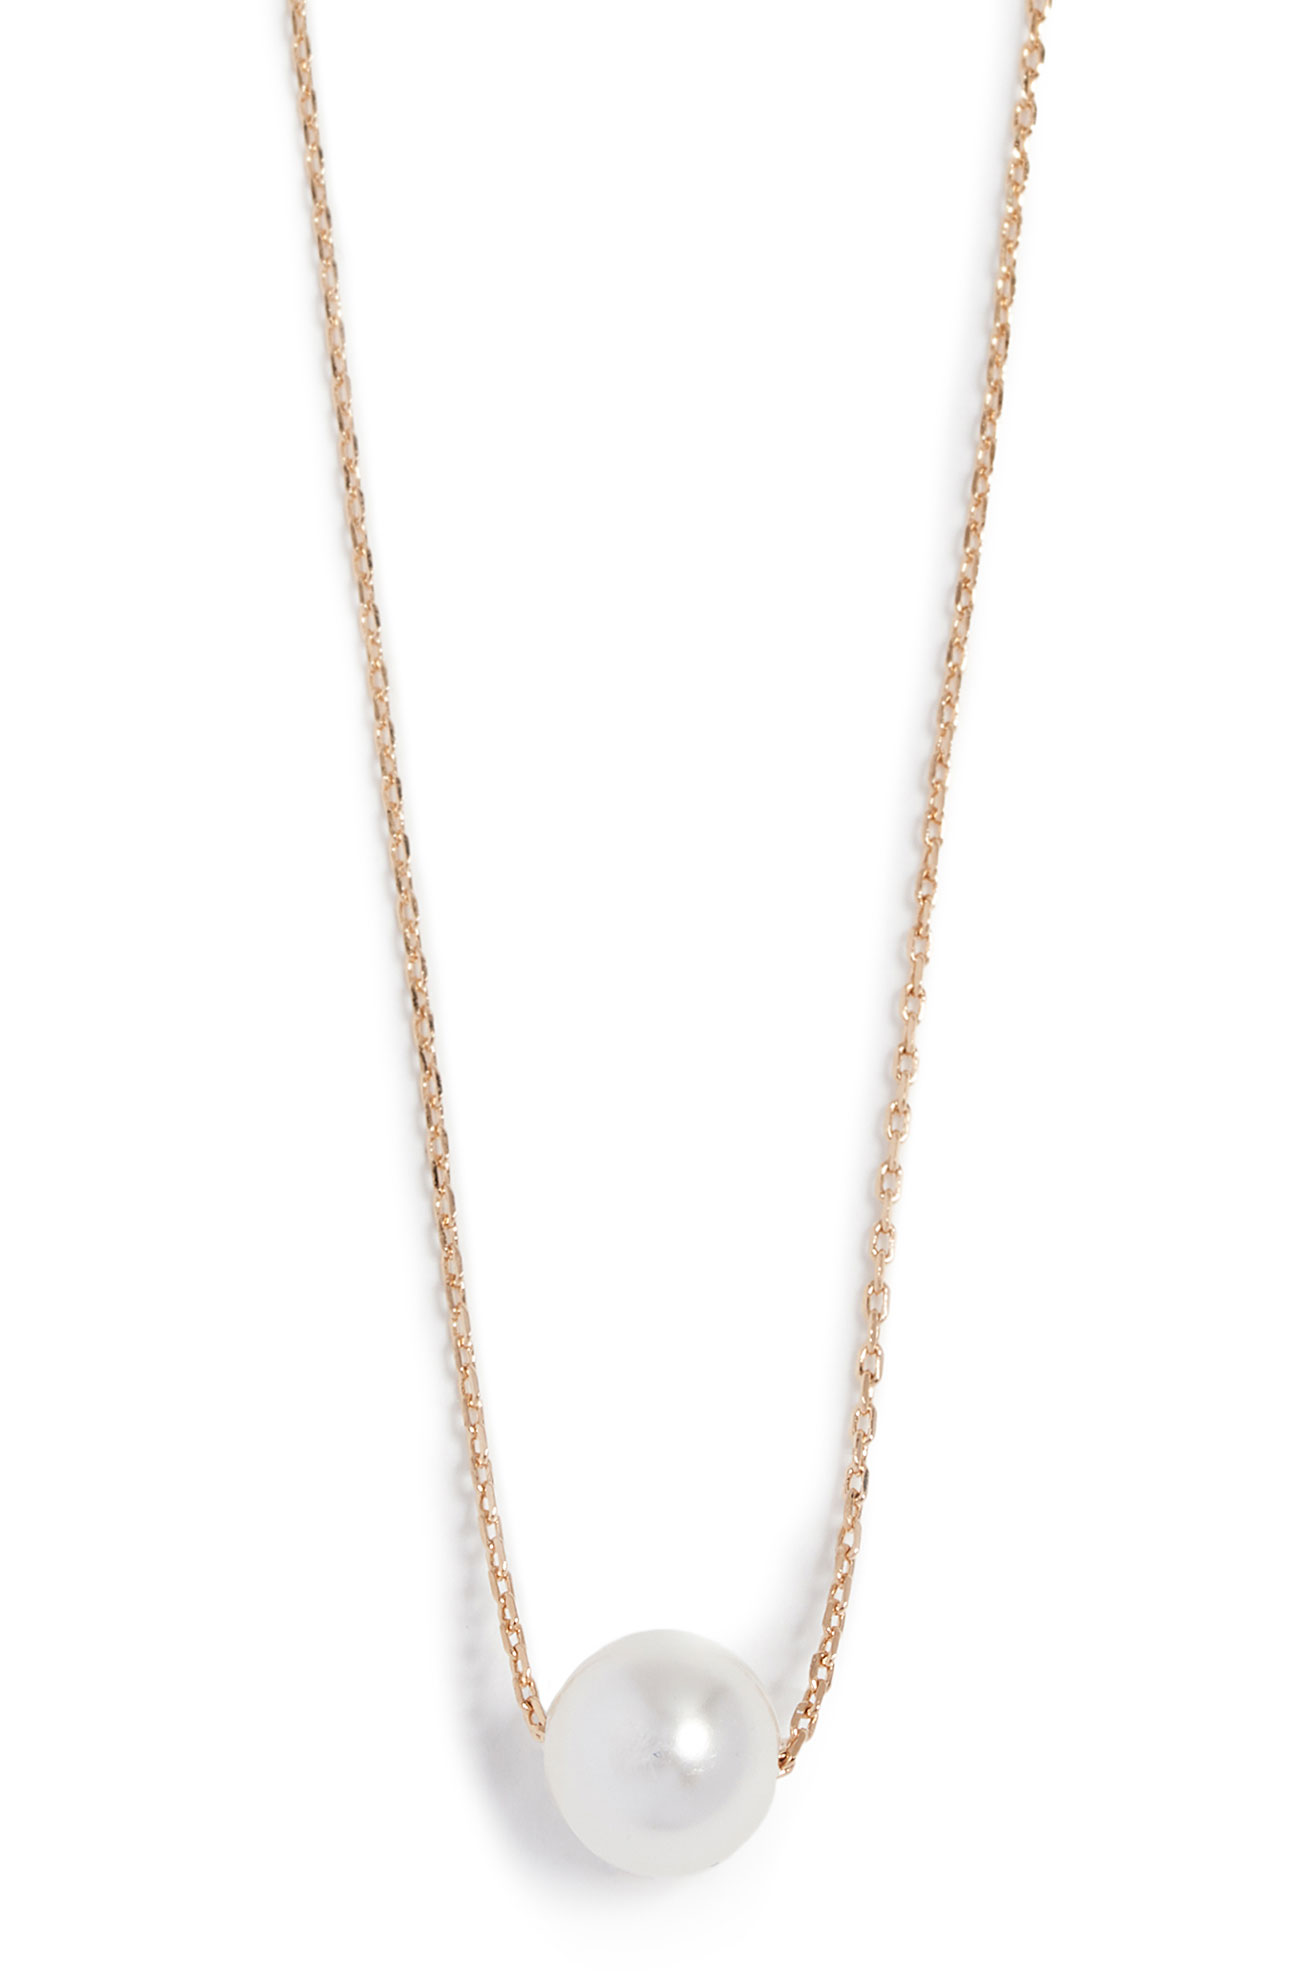 Theia Pearl Necklace     $28